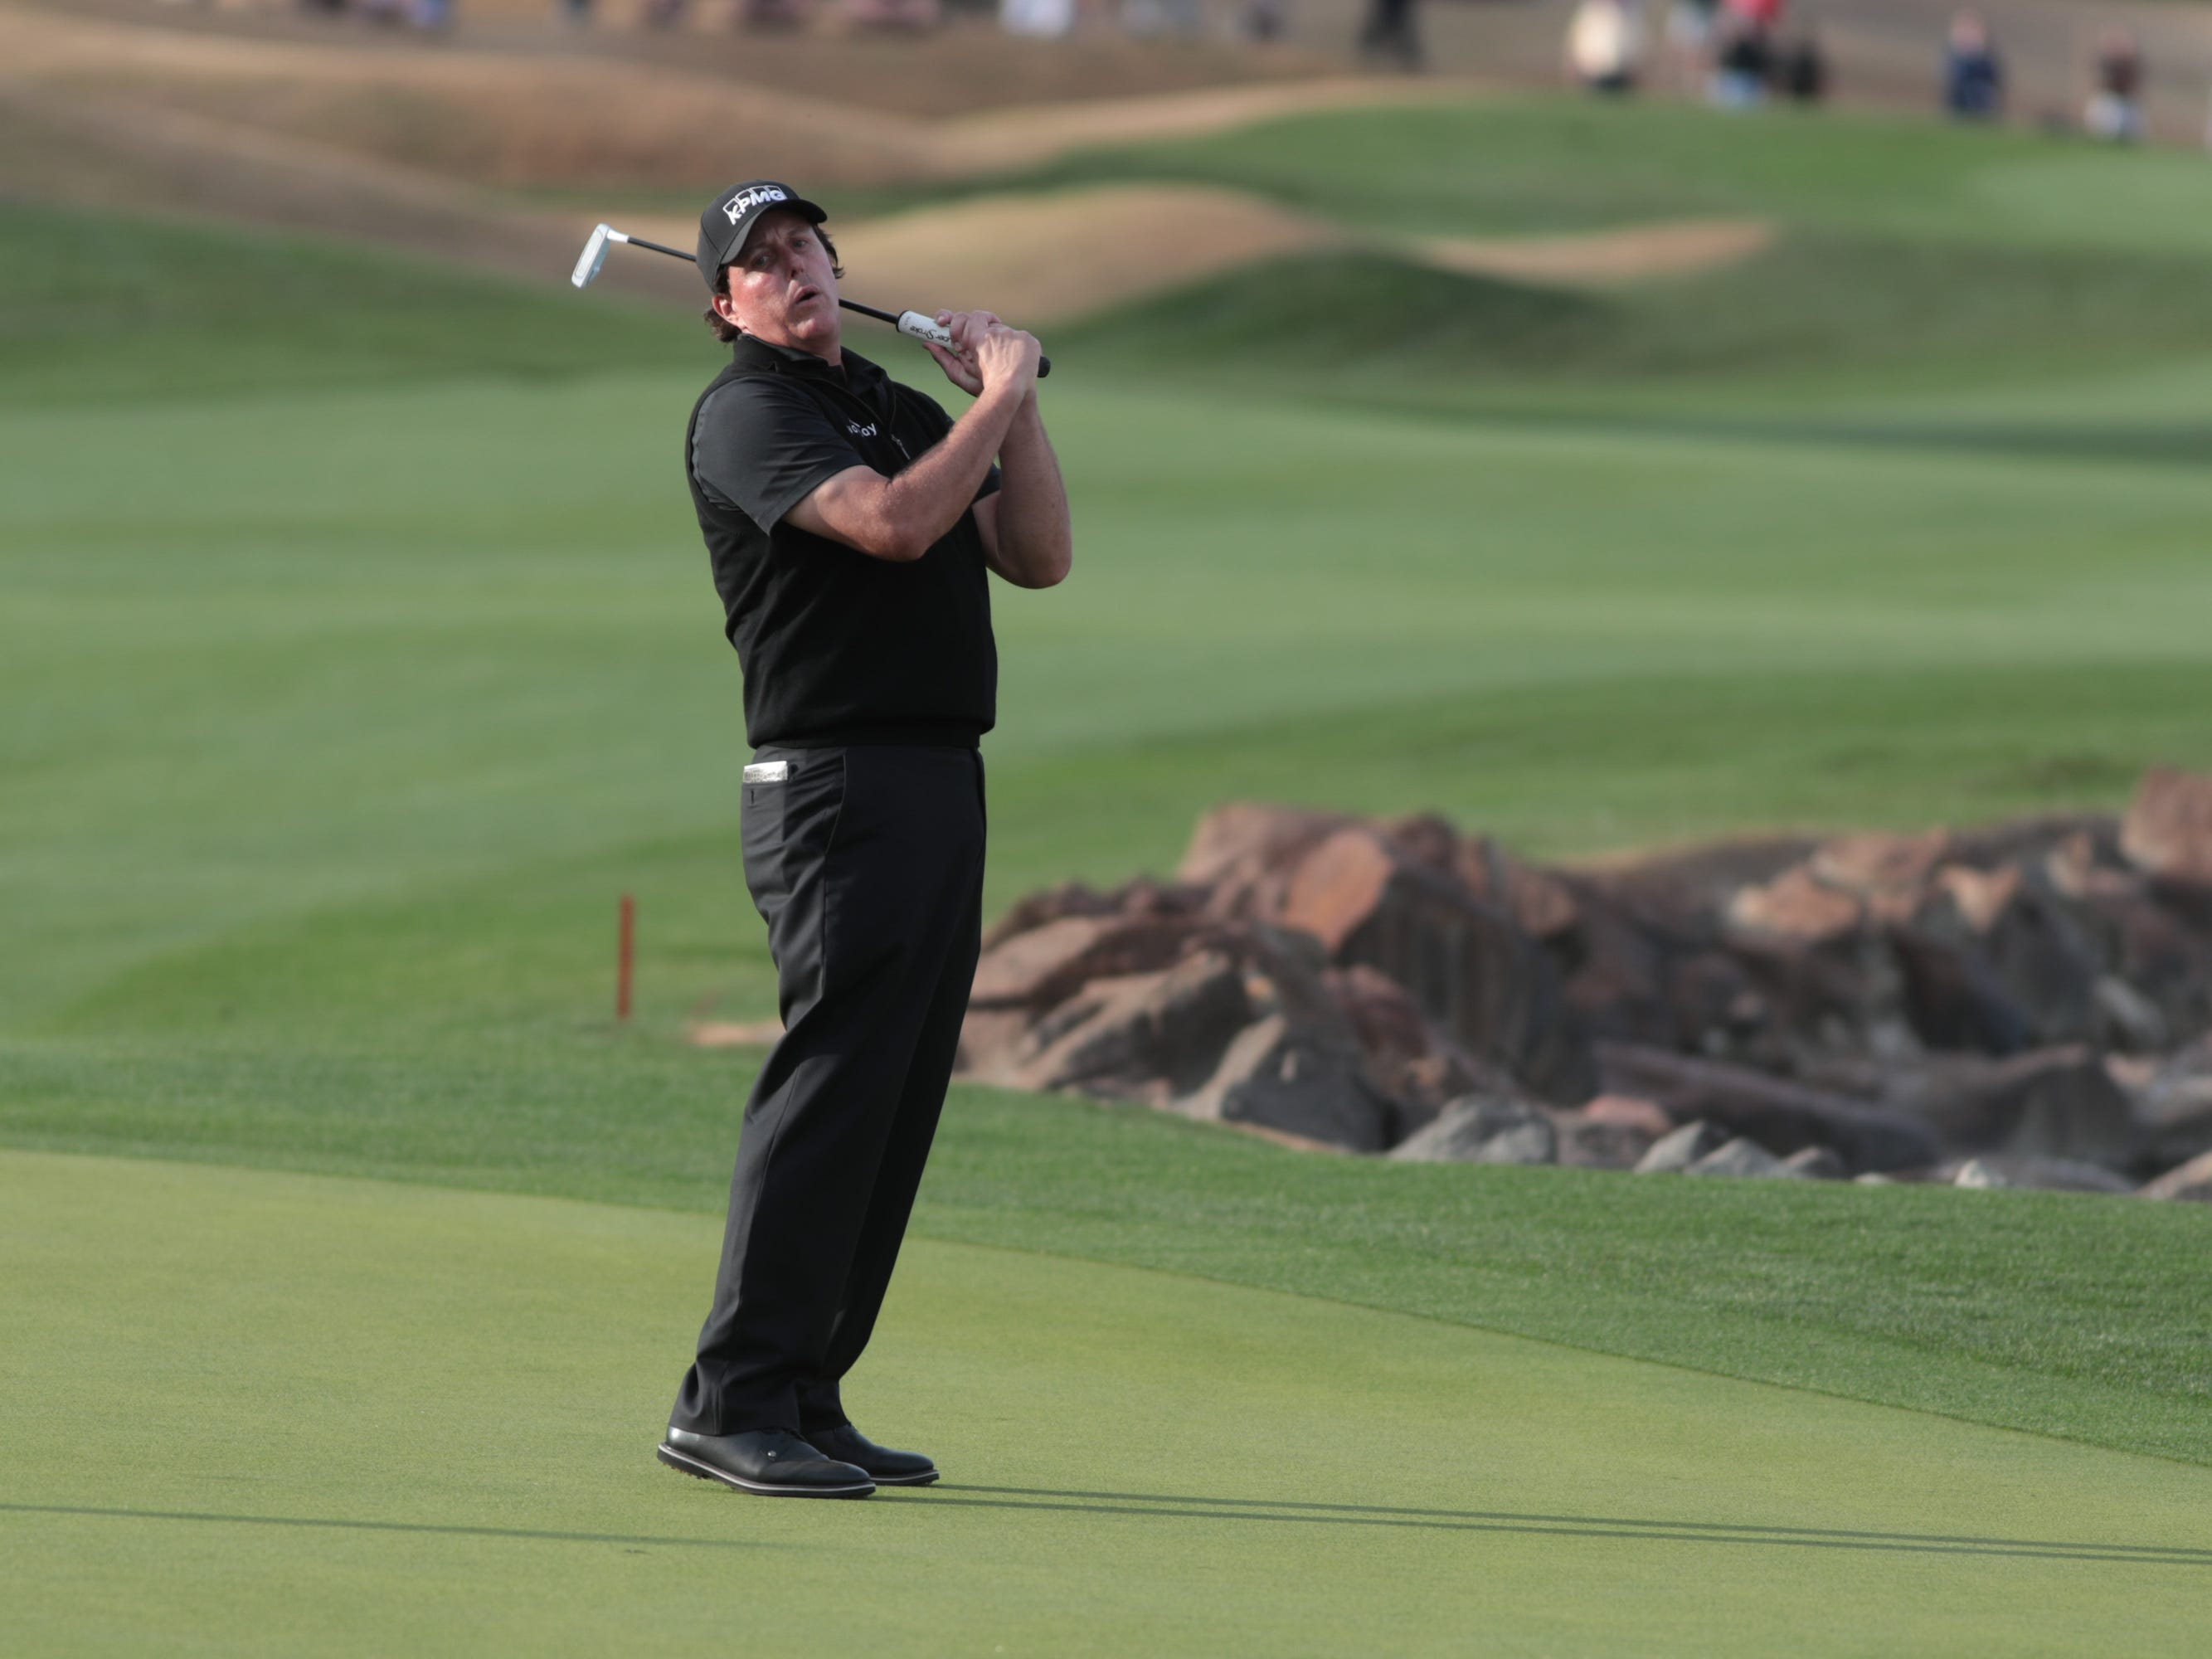 Phil Mickelson reacts after missing a birdie putt on the 18th hole of the 2019 Desert Classic, Sunday, January 20, 2019.